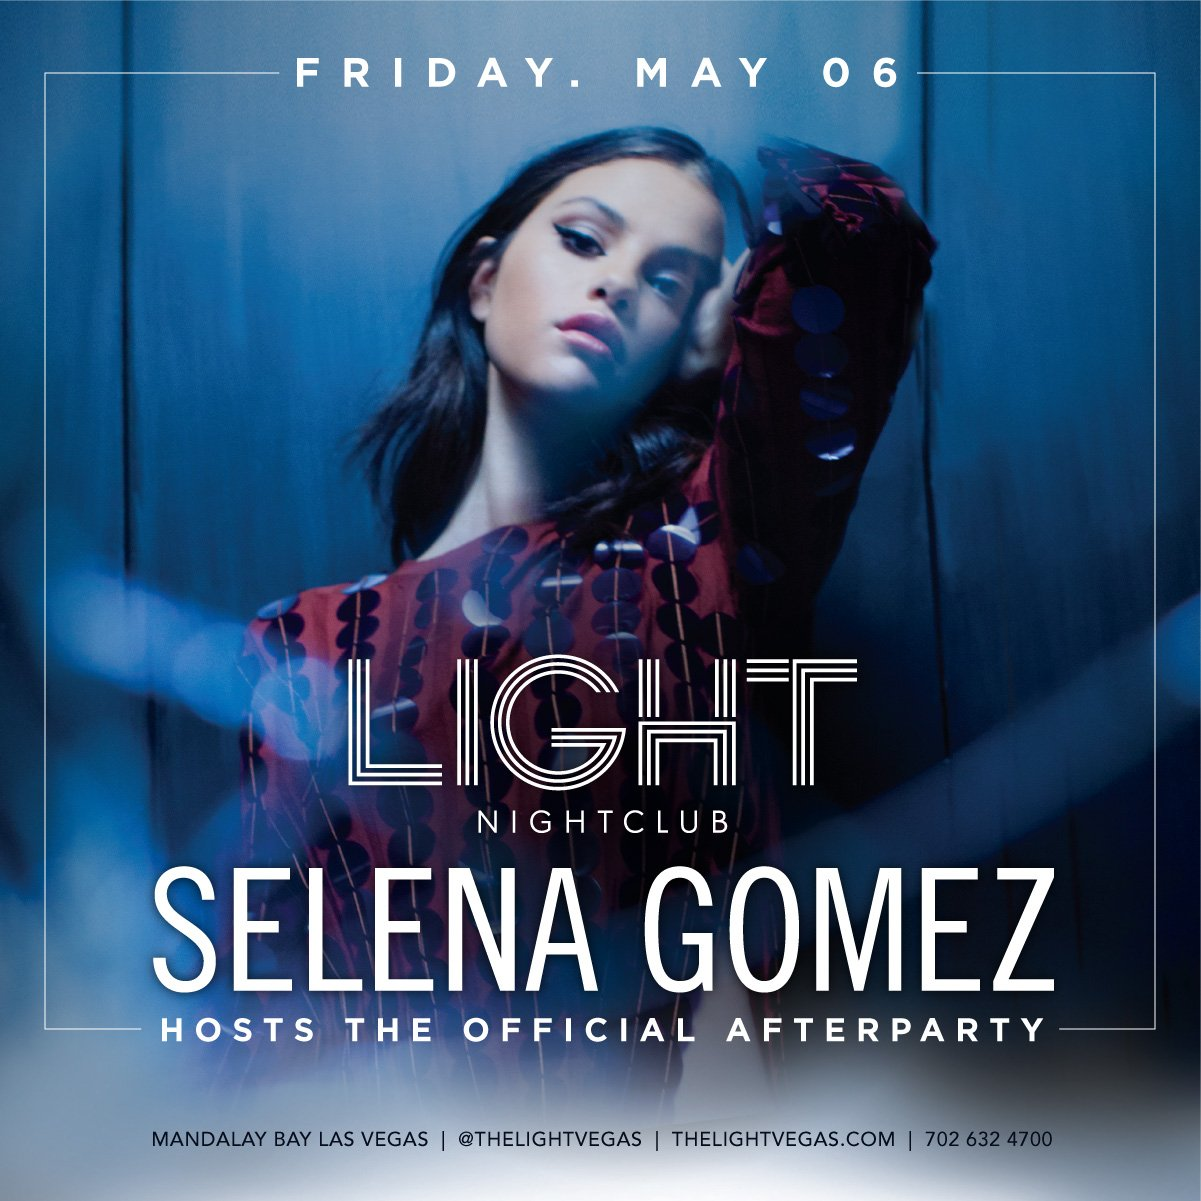 Hosting the official party after my concert in Vegas on May 6 at @thelightvegas! https://t.co/Rtmzymk7C9 https://t.co/3K5P30wxj0